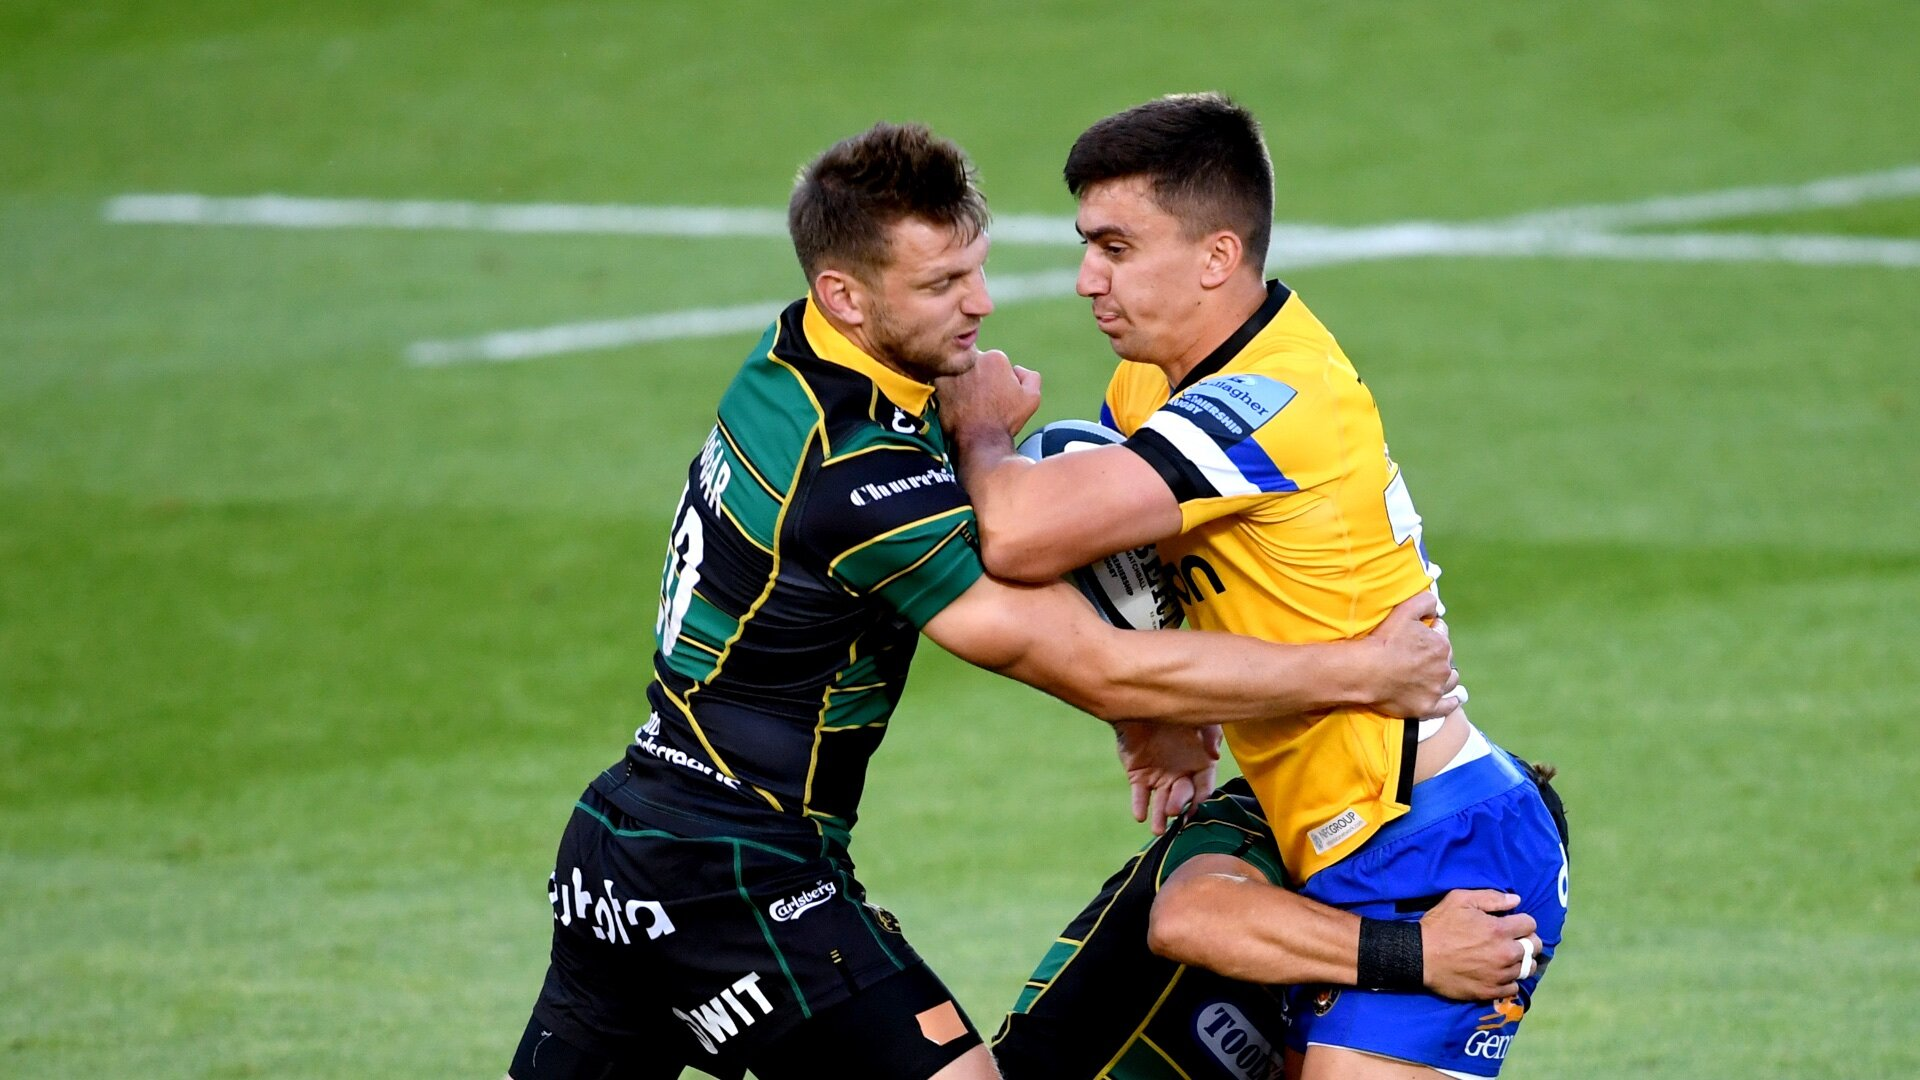 Bath beat Northampton Premiership